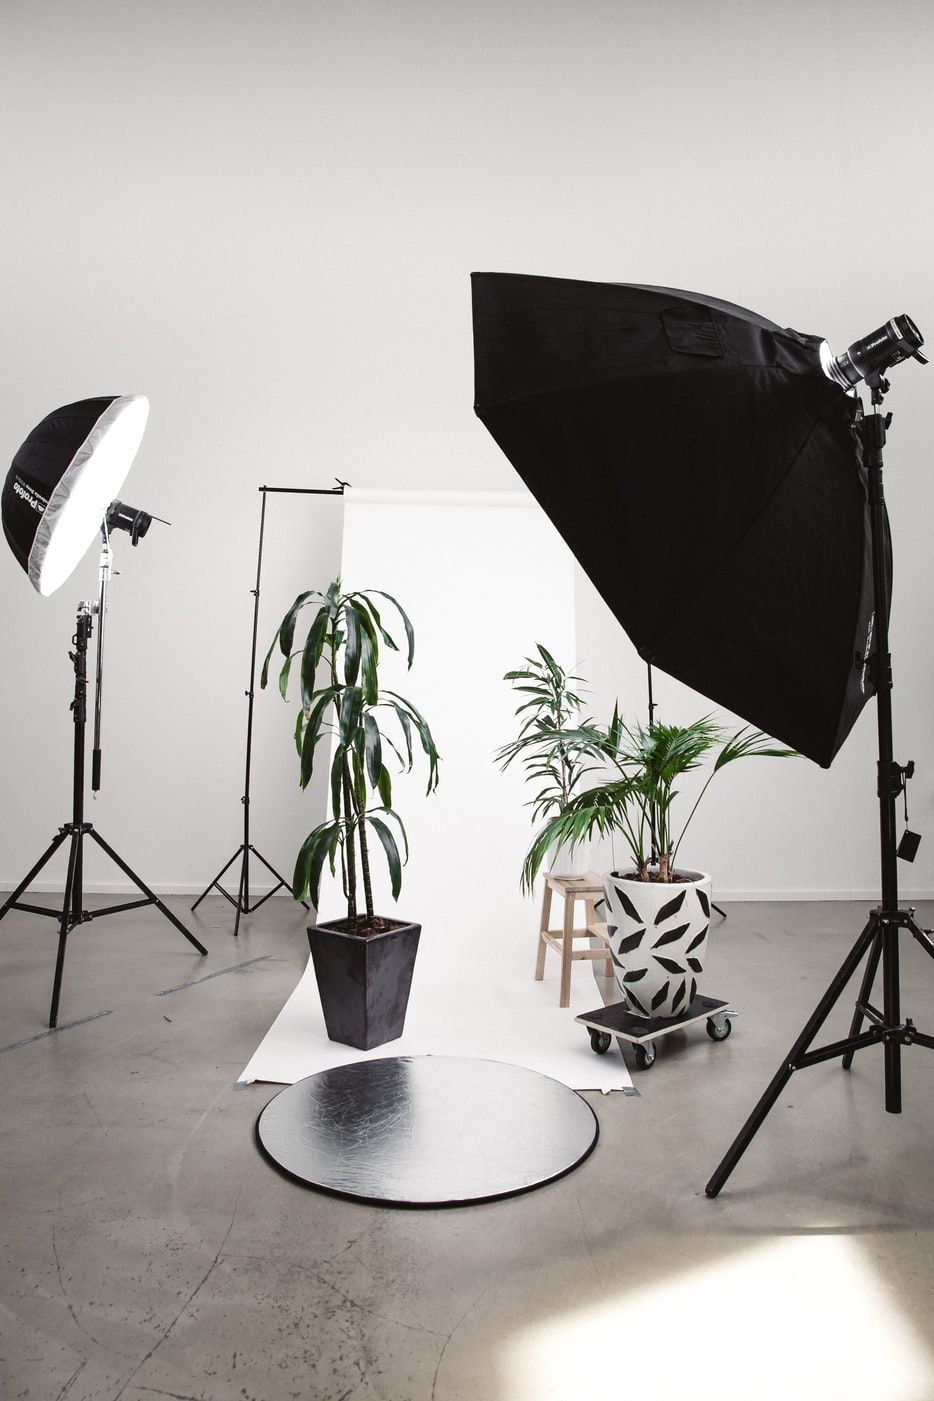 A soft light, backdrop and some plants set up for a photo session